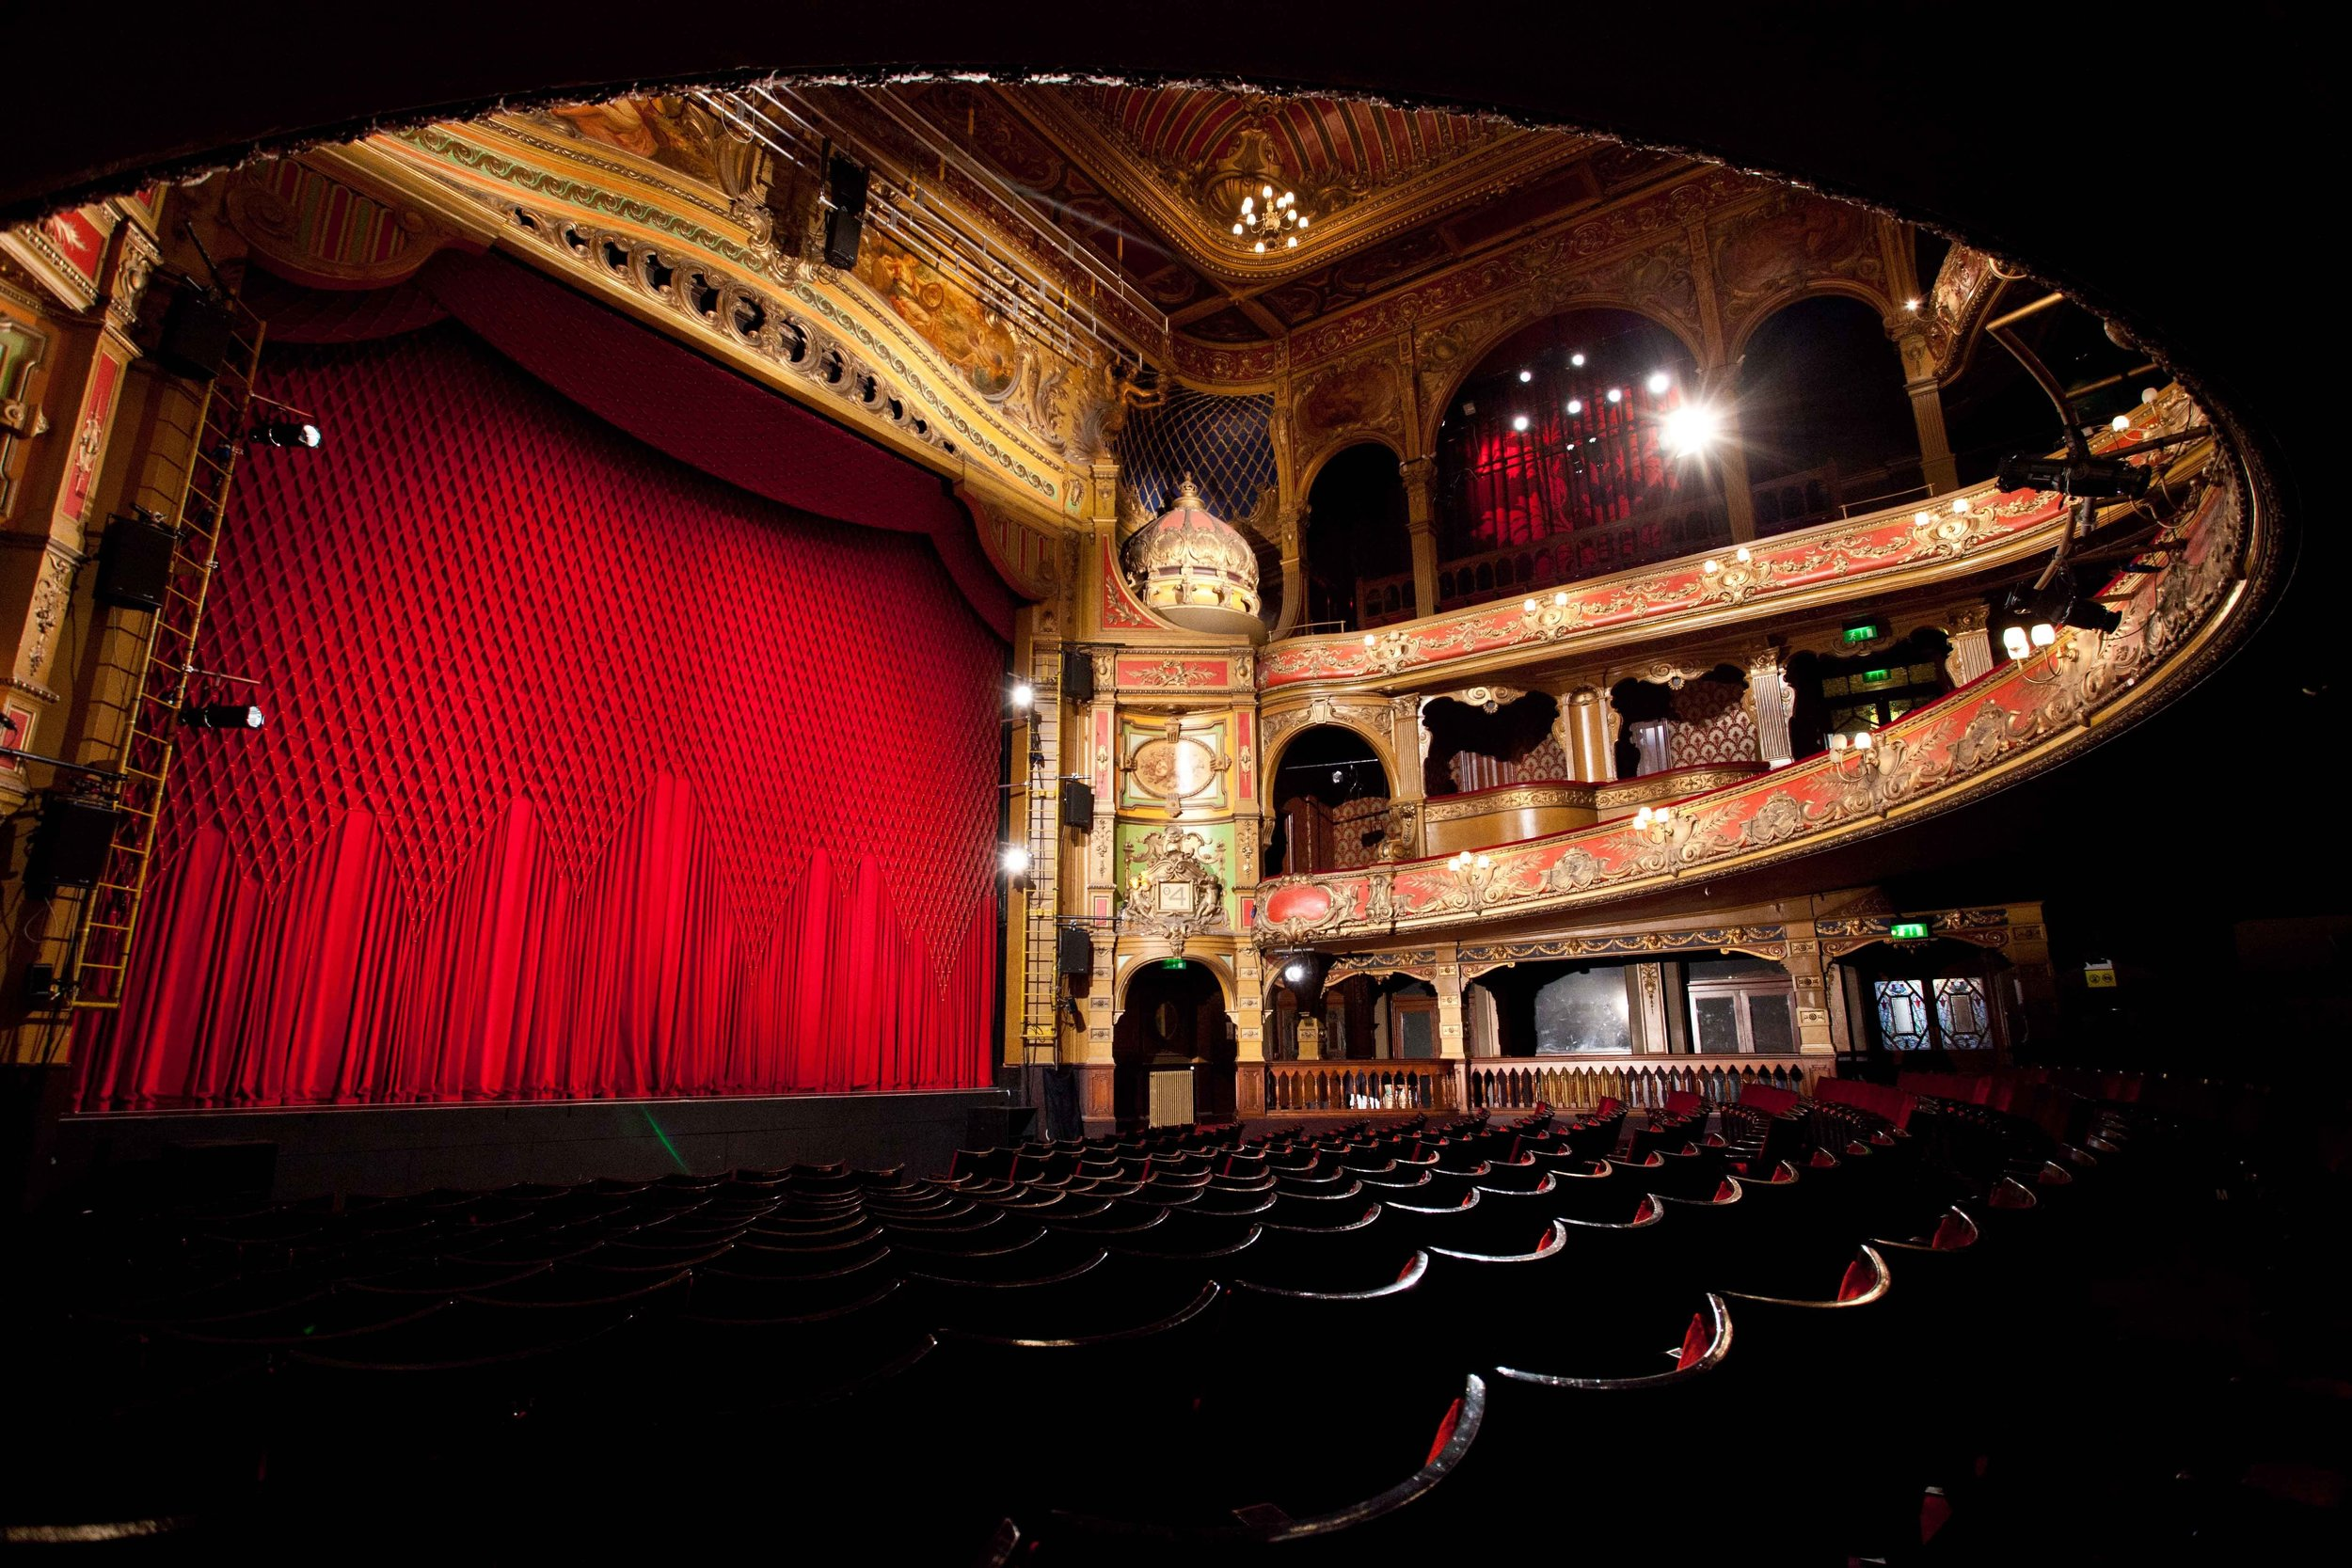 Hackney Empire Theatre, Londra. foto di: Hackney Empire Theatre